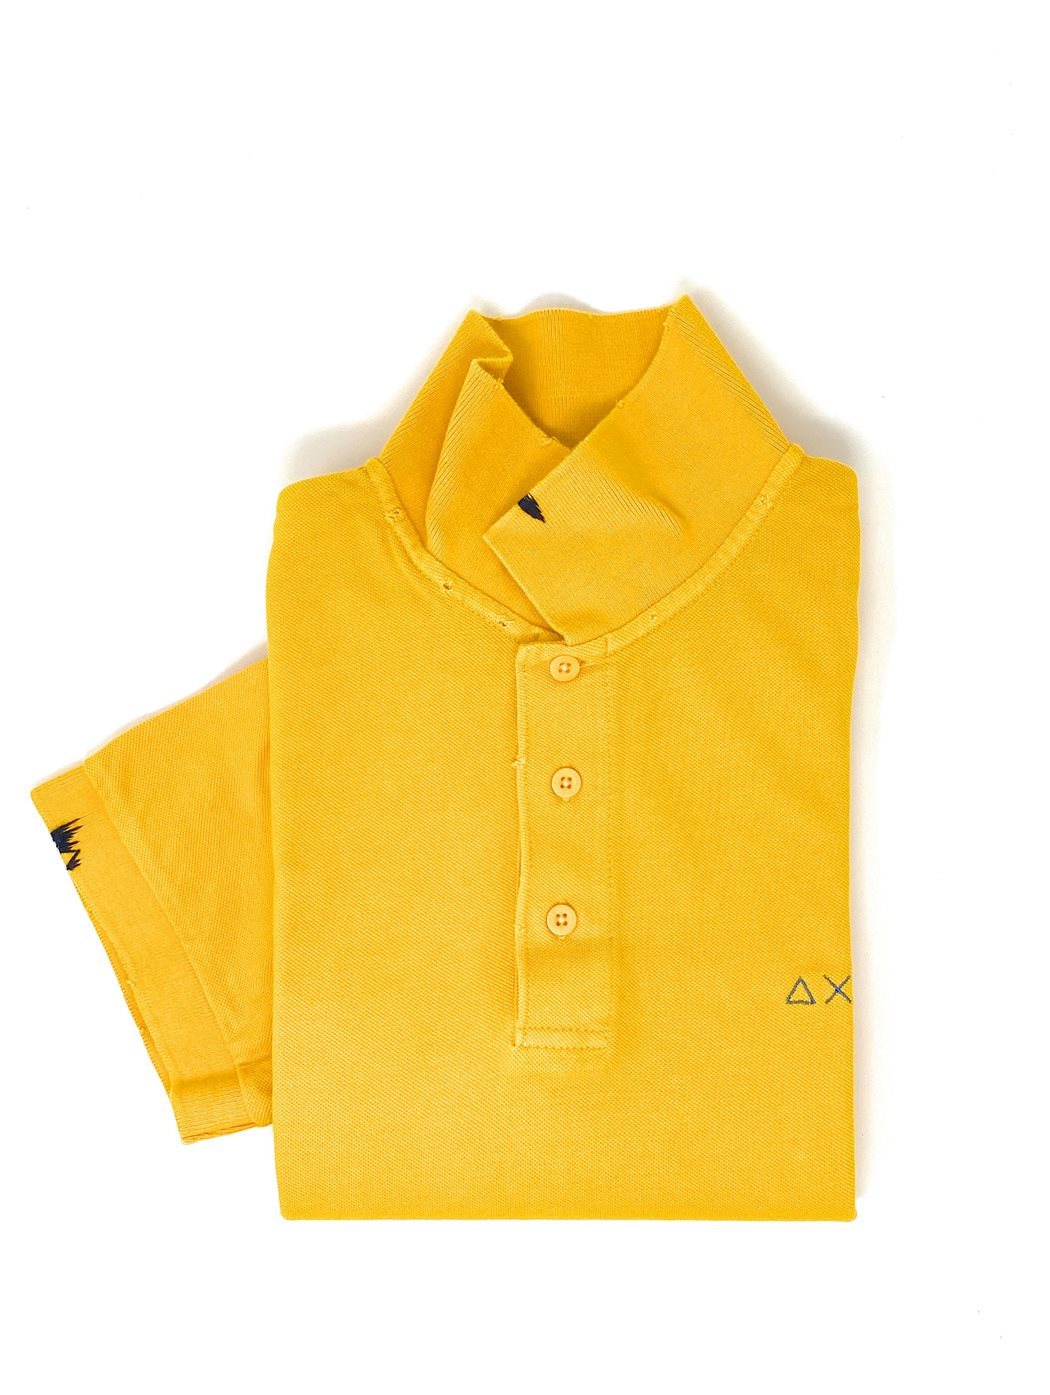 SUN68 a30101 85 giallo POLO